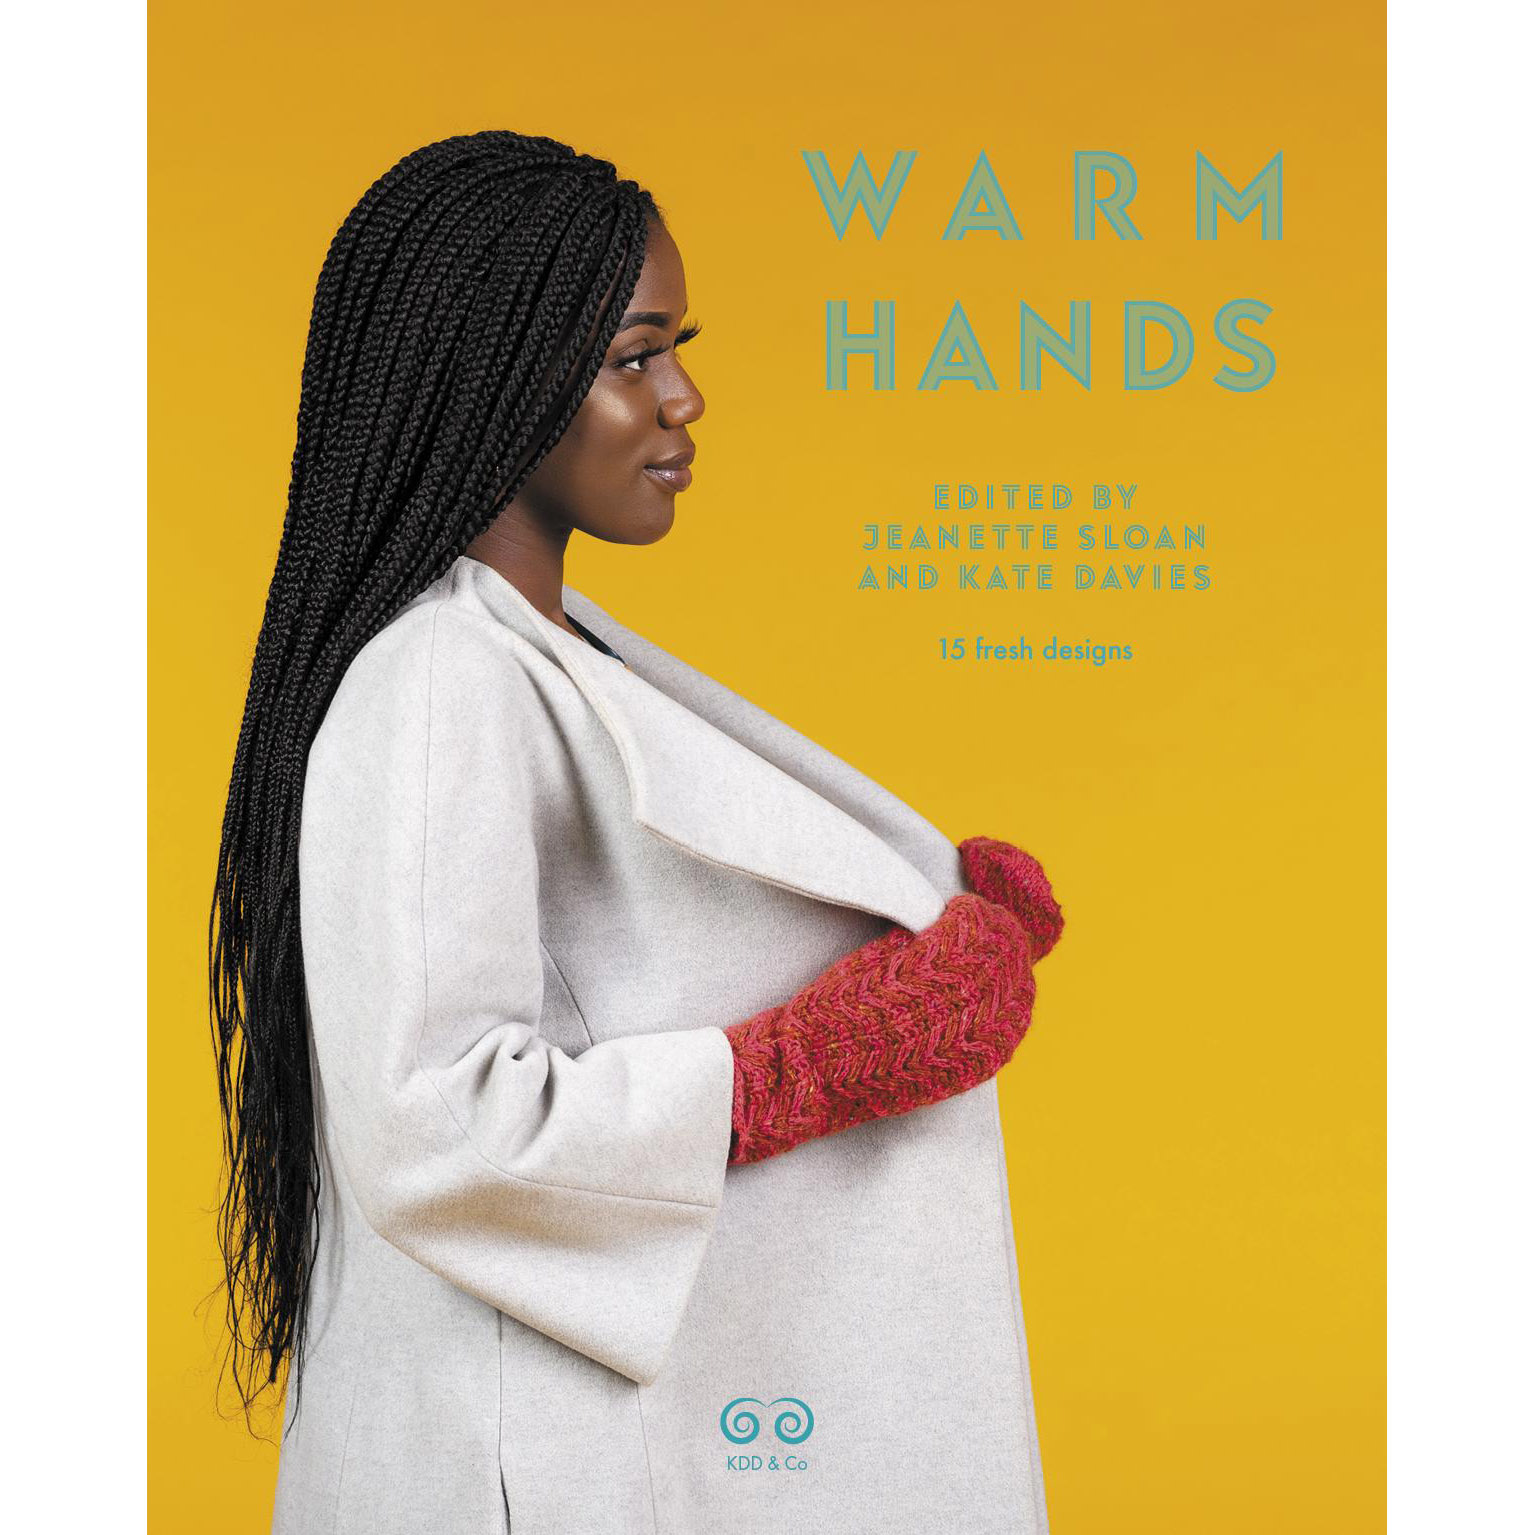 Kate Davies Design WARM HANDS by KATE DAVIES